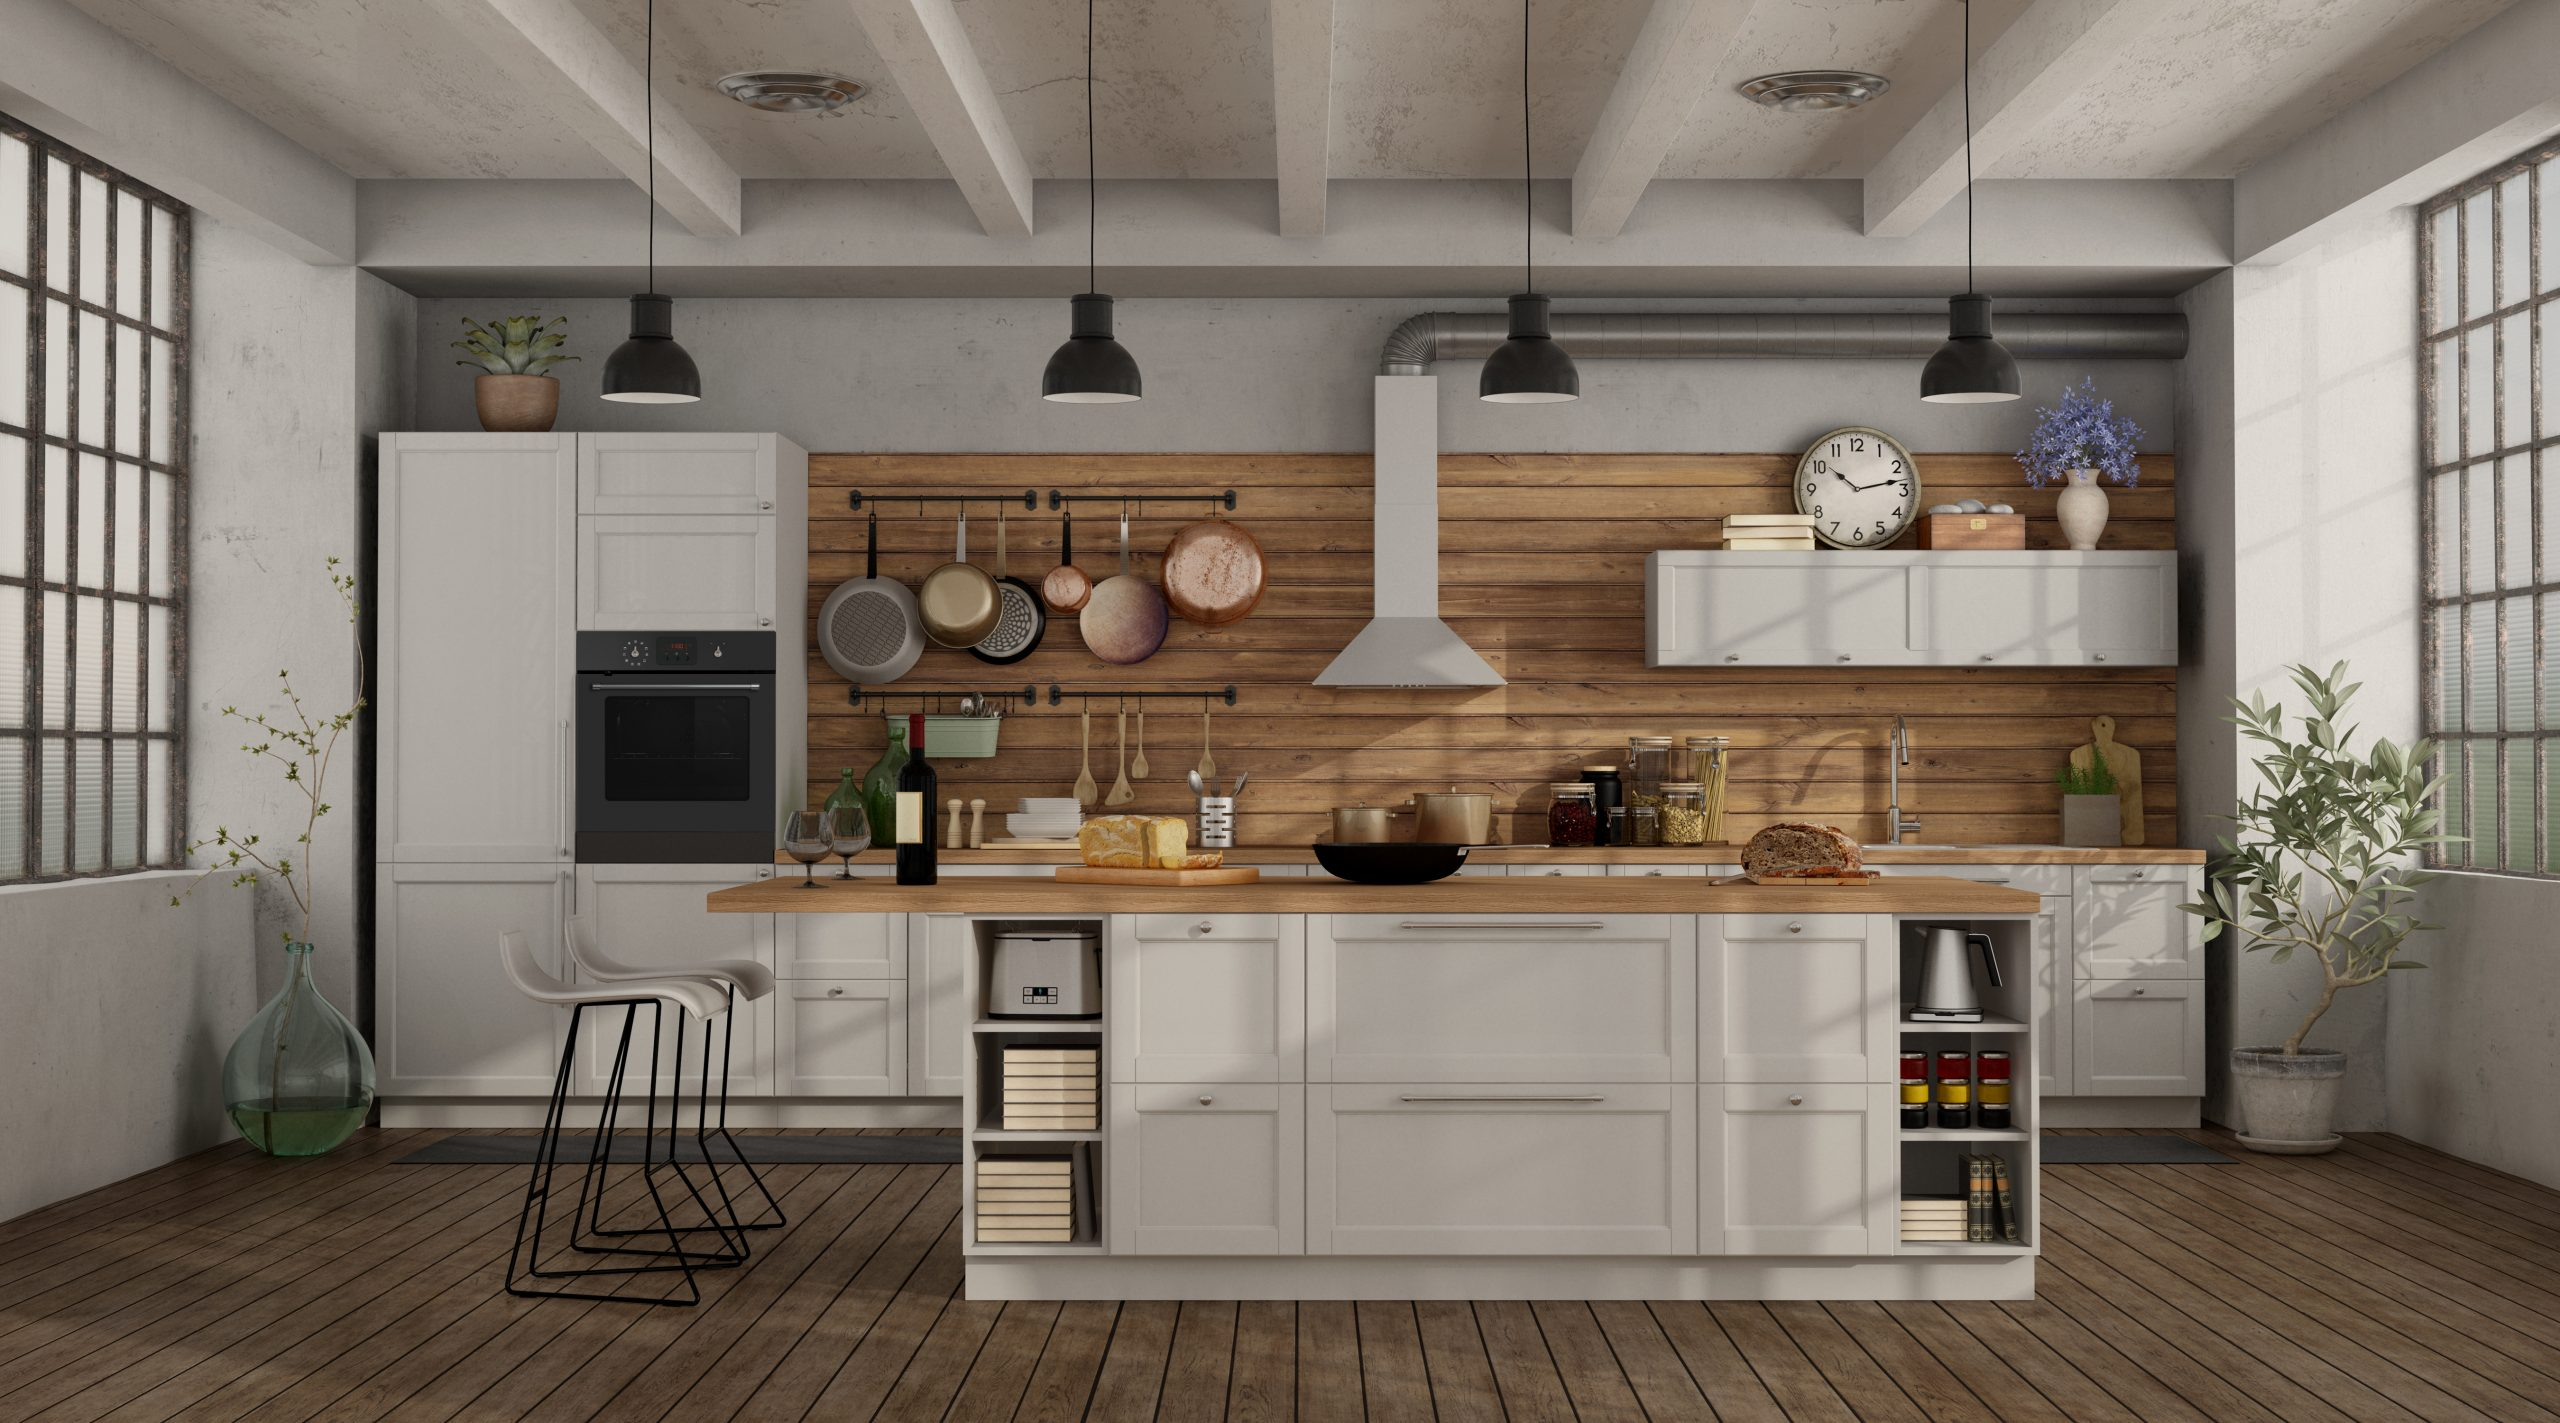 Retro white kitchen in a loft with island and barstool - 3d rendering